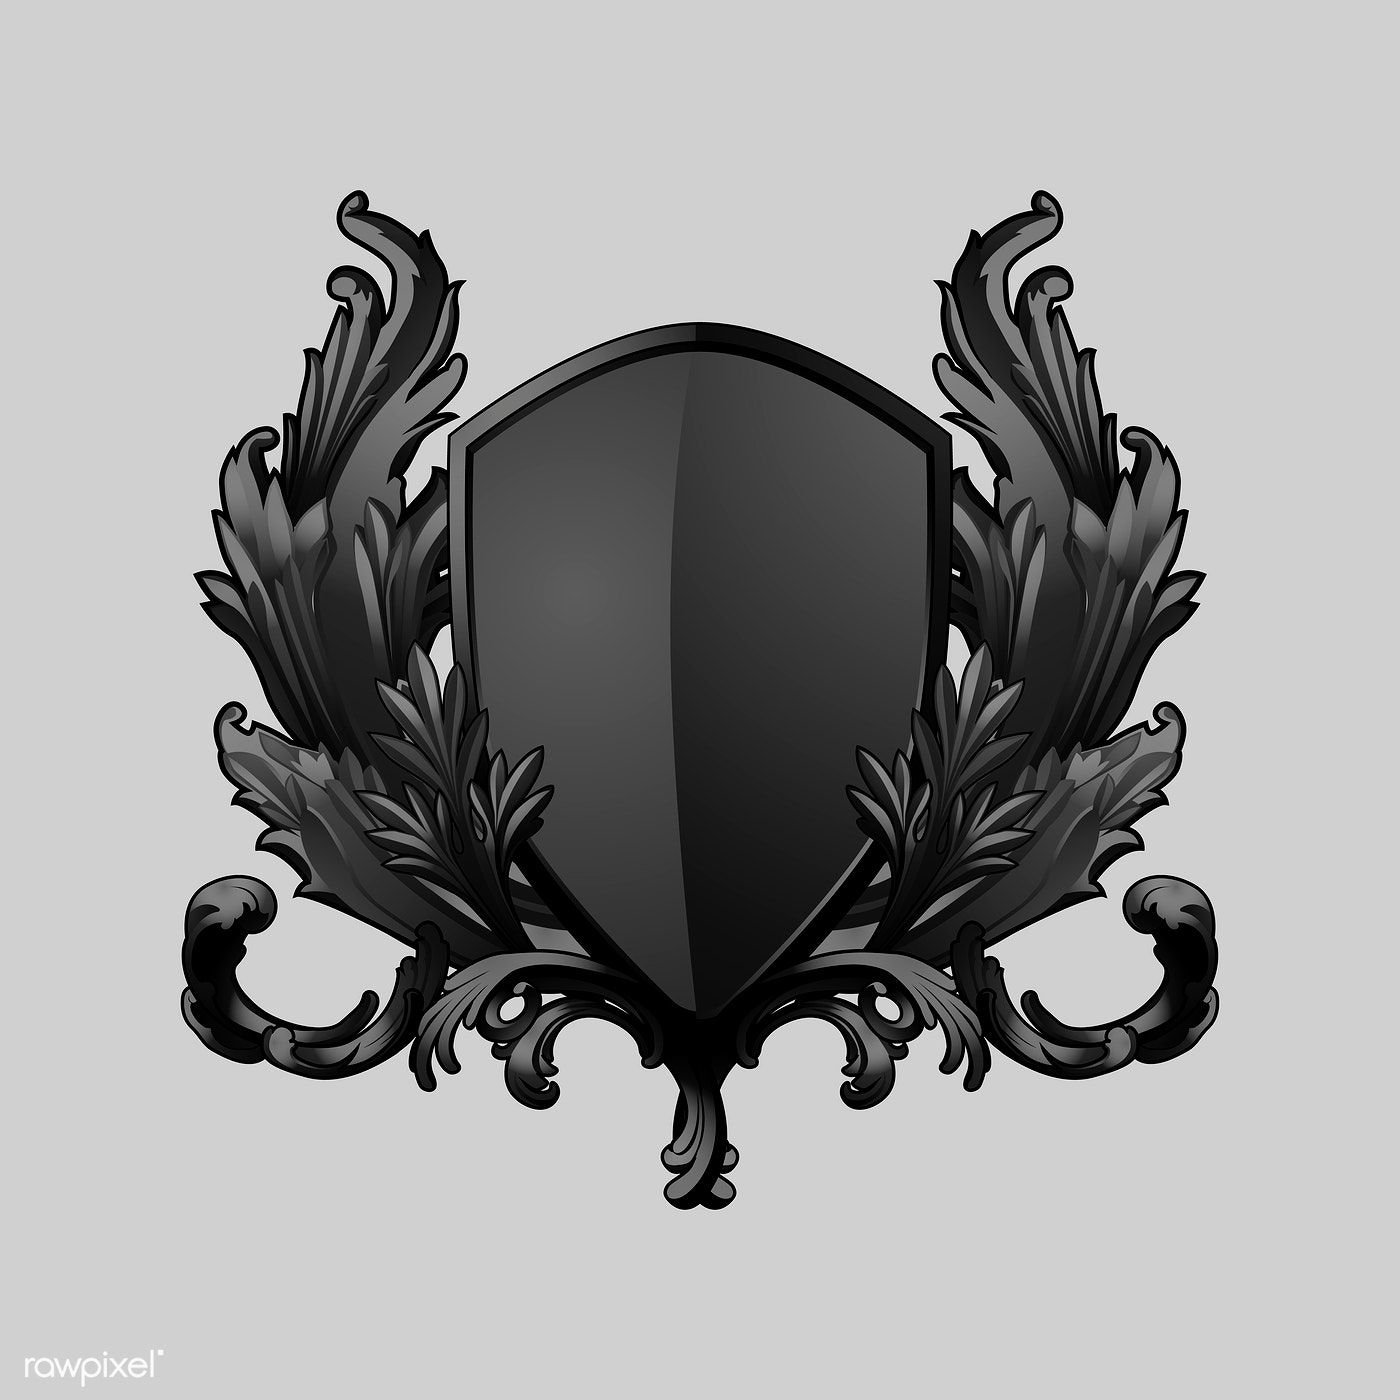 Black Baroque shield elements vector free image by